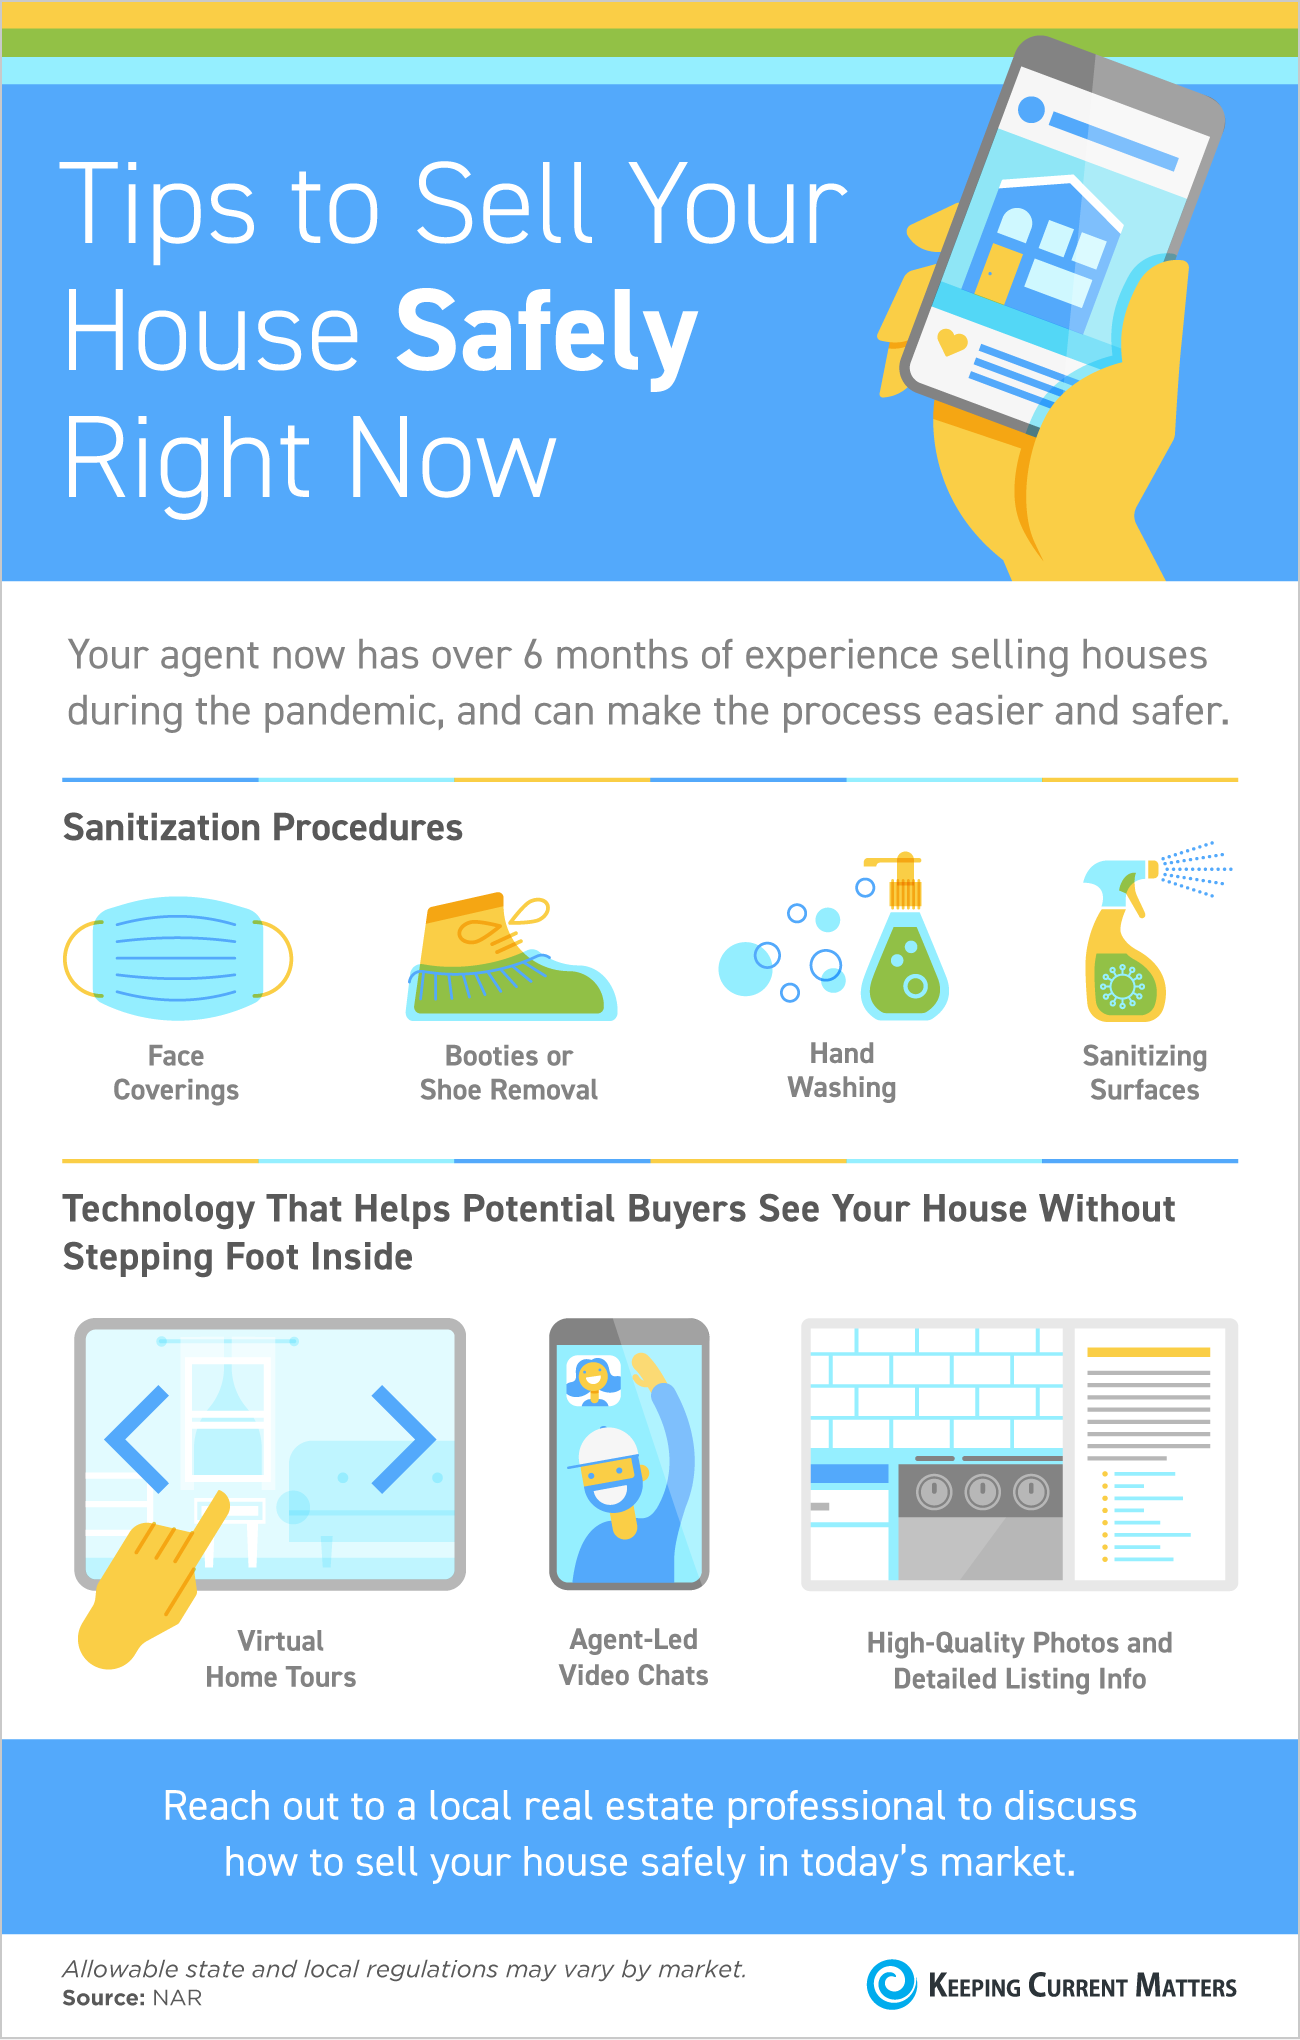 Tips to Sell Your House Safely Right Now [INFOGRAPHIC] | Keeping Current Matters